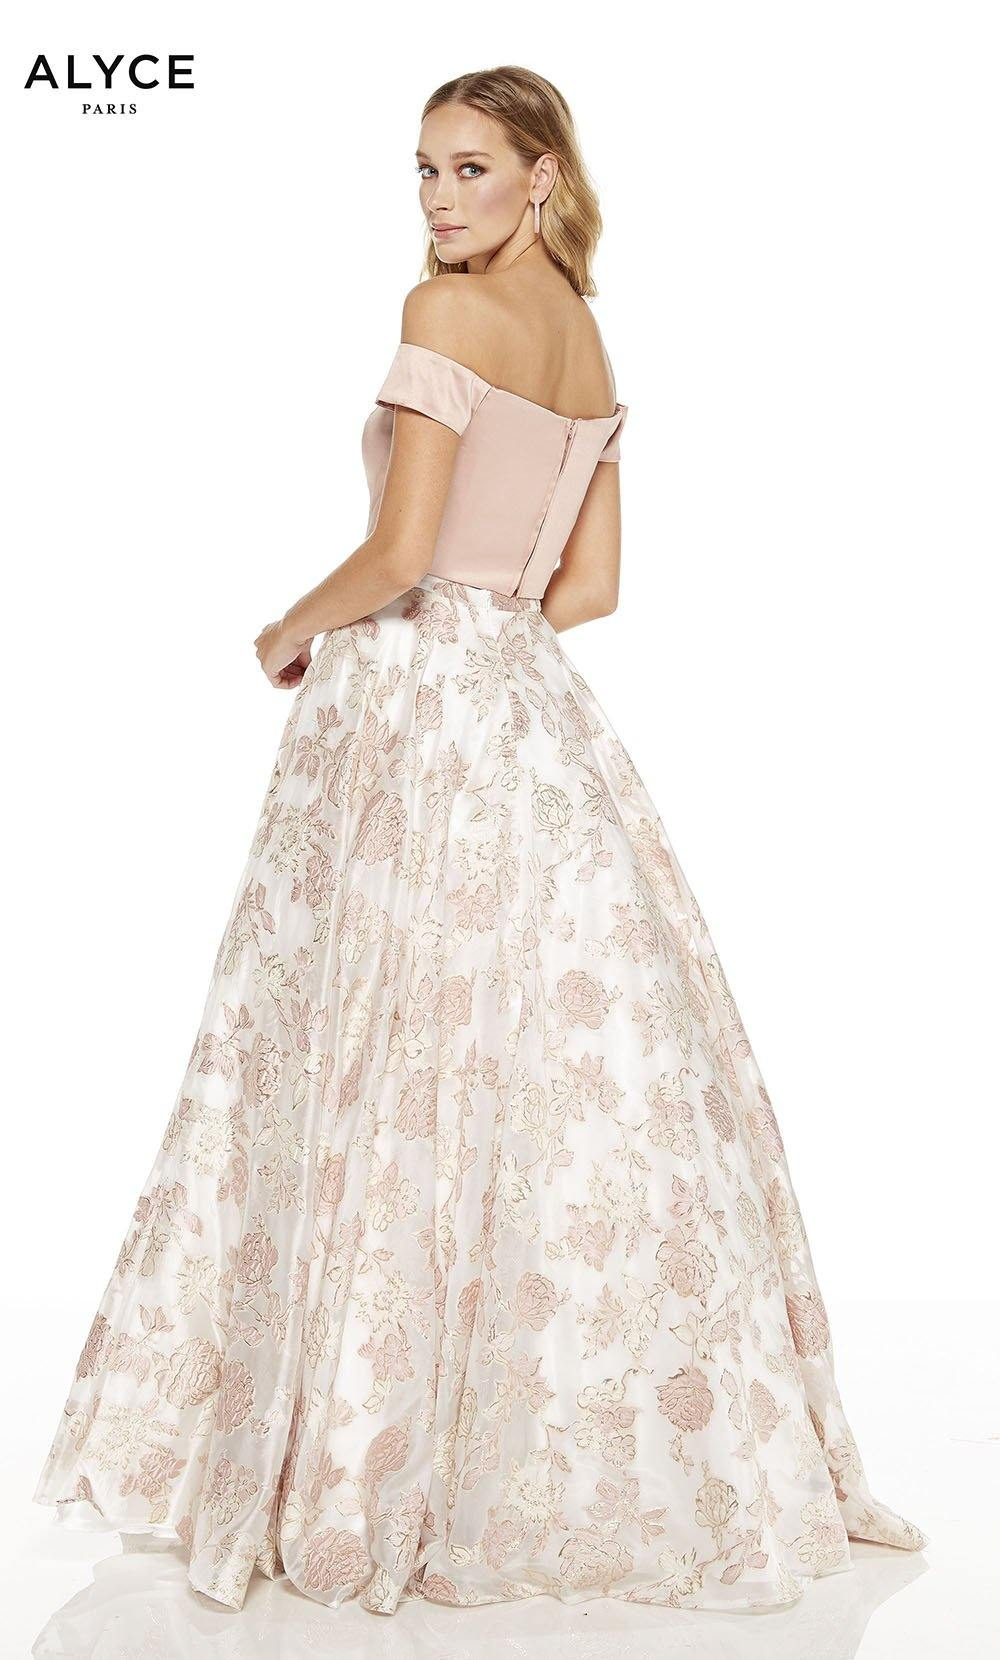 Dusty Rose - Diamond white off the shoulder two piece prom dress with zip up satin crop top and a floral skirt